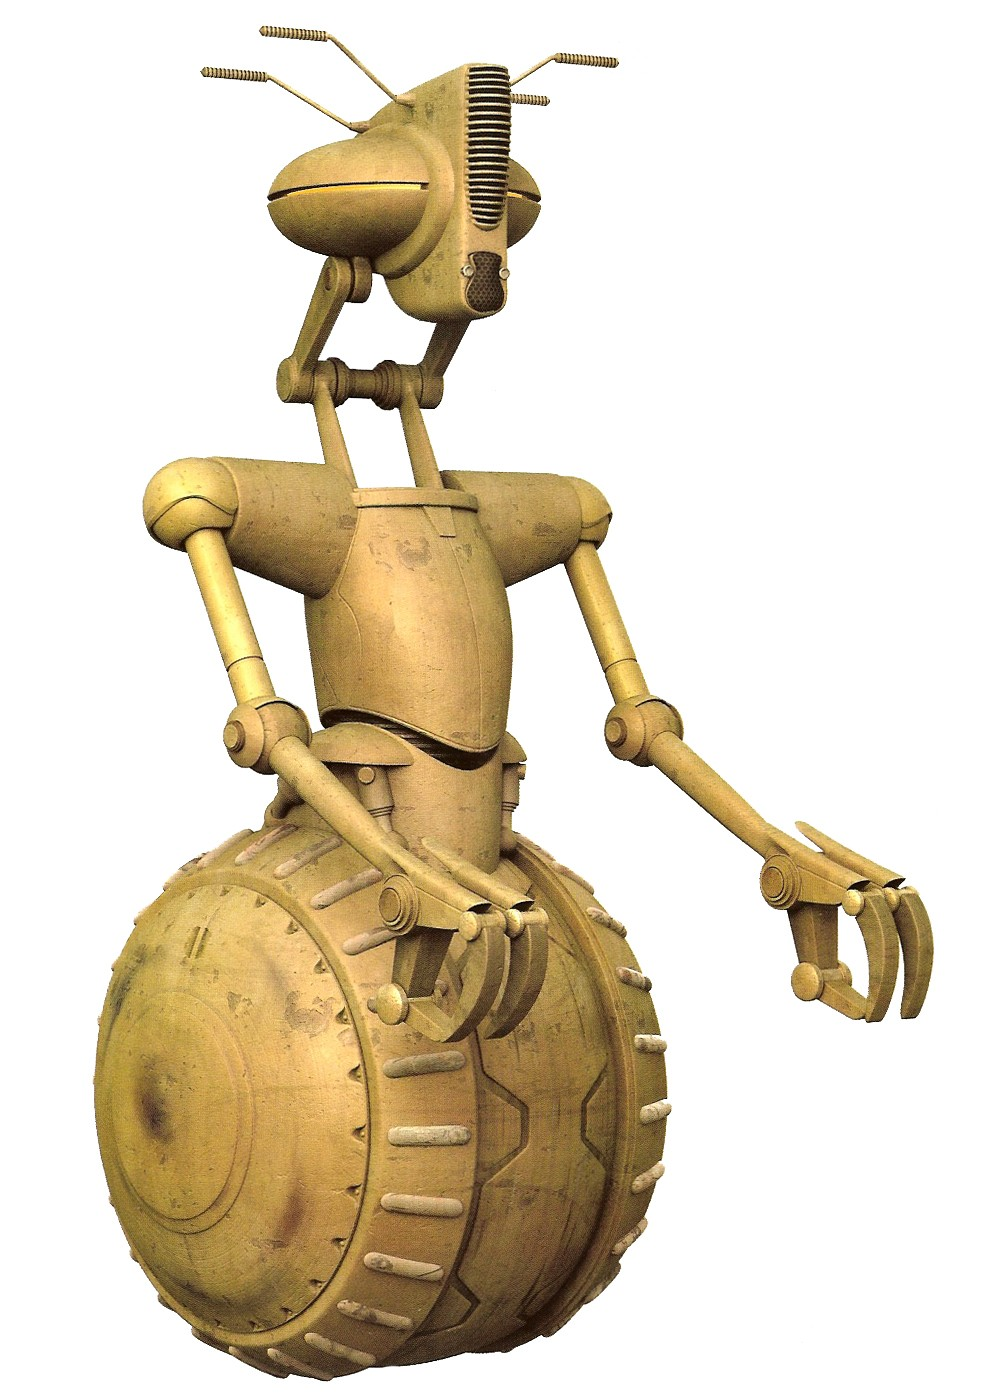 Serv-O-Droid, Inc. RIC-series general labor droid